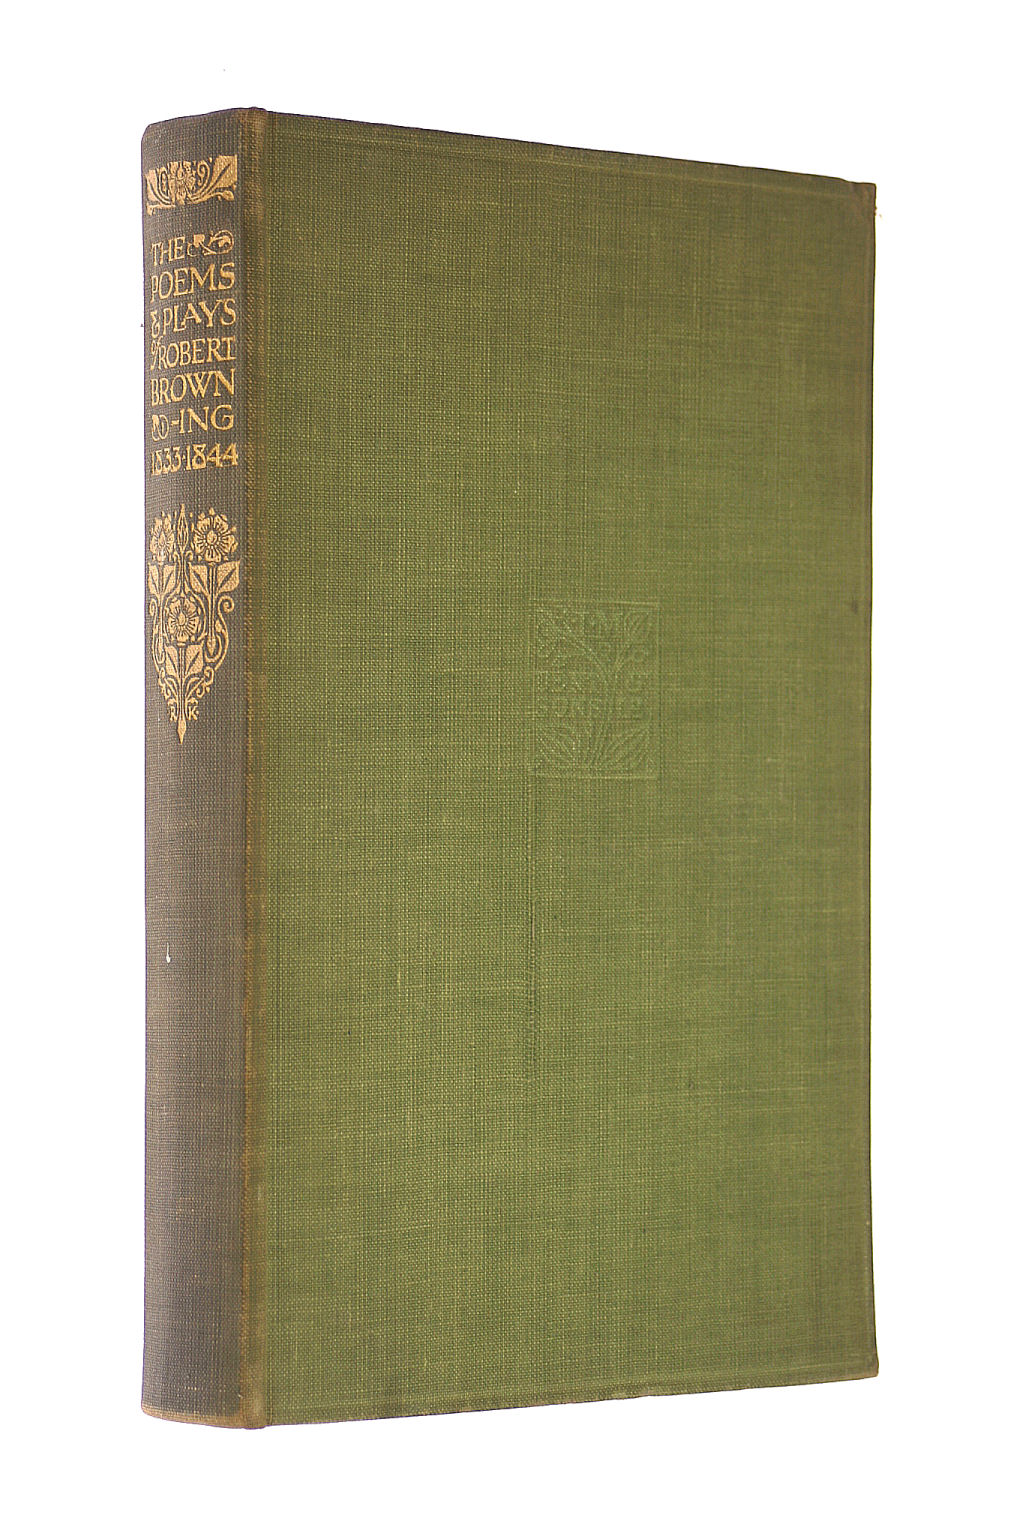 Image for The Poems & Plays of Robert Browning 1833 - 1844